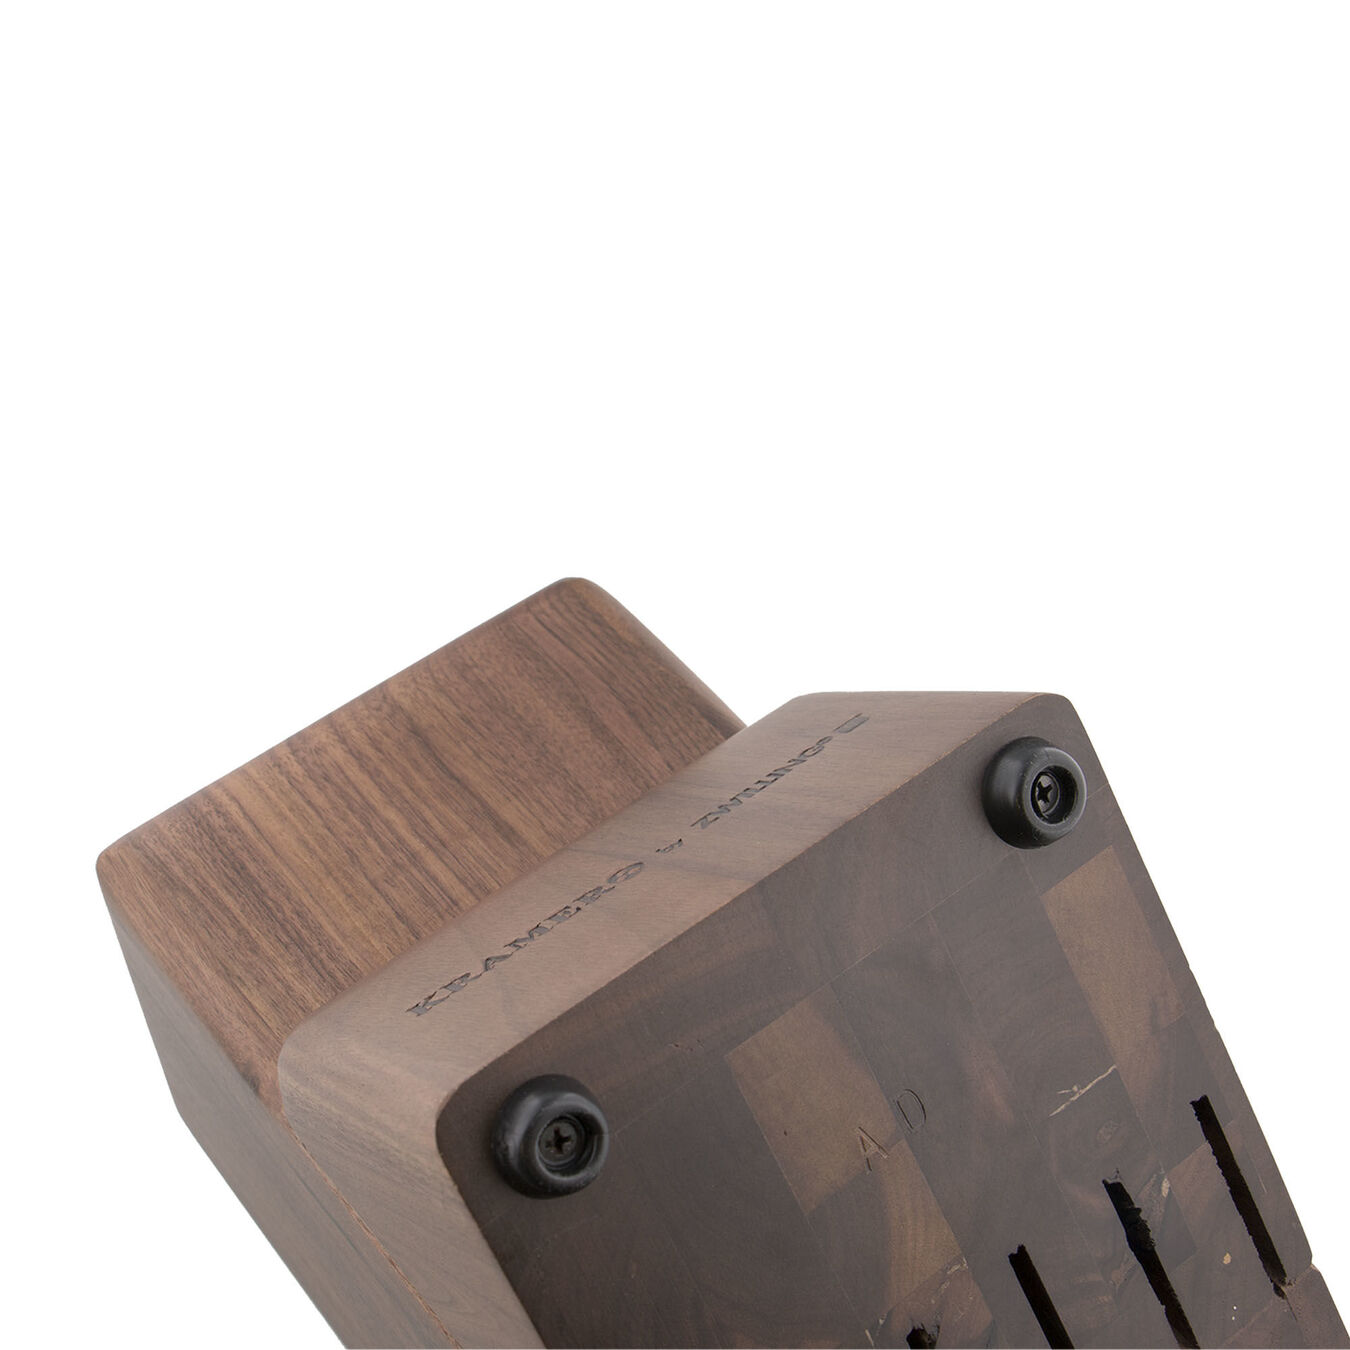 14-slot Walnut Knife Block,,large 5